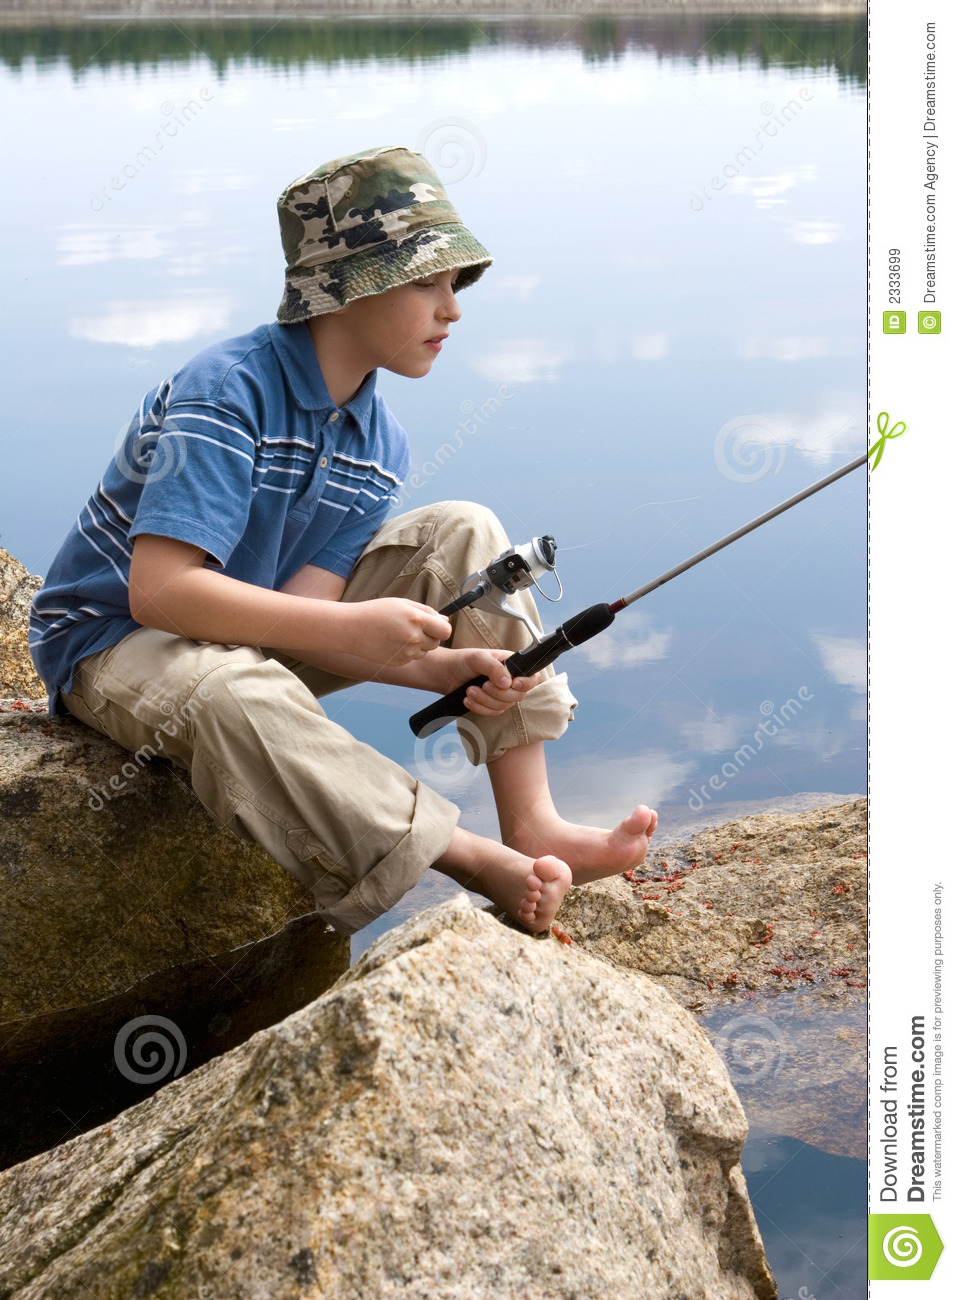 boy fishing stock image image of waiting patience